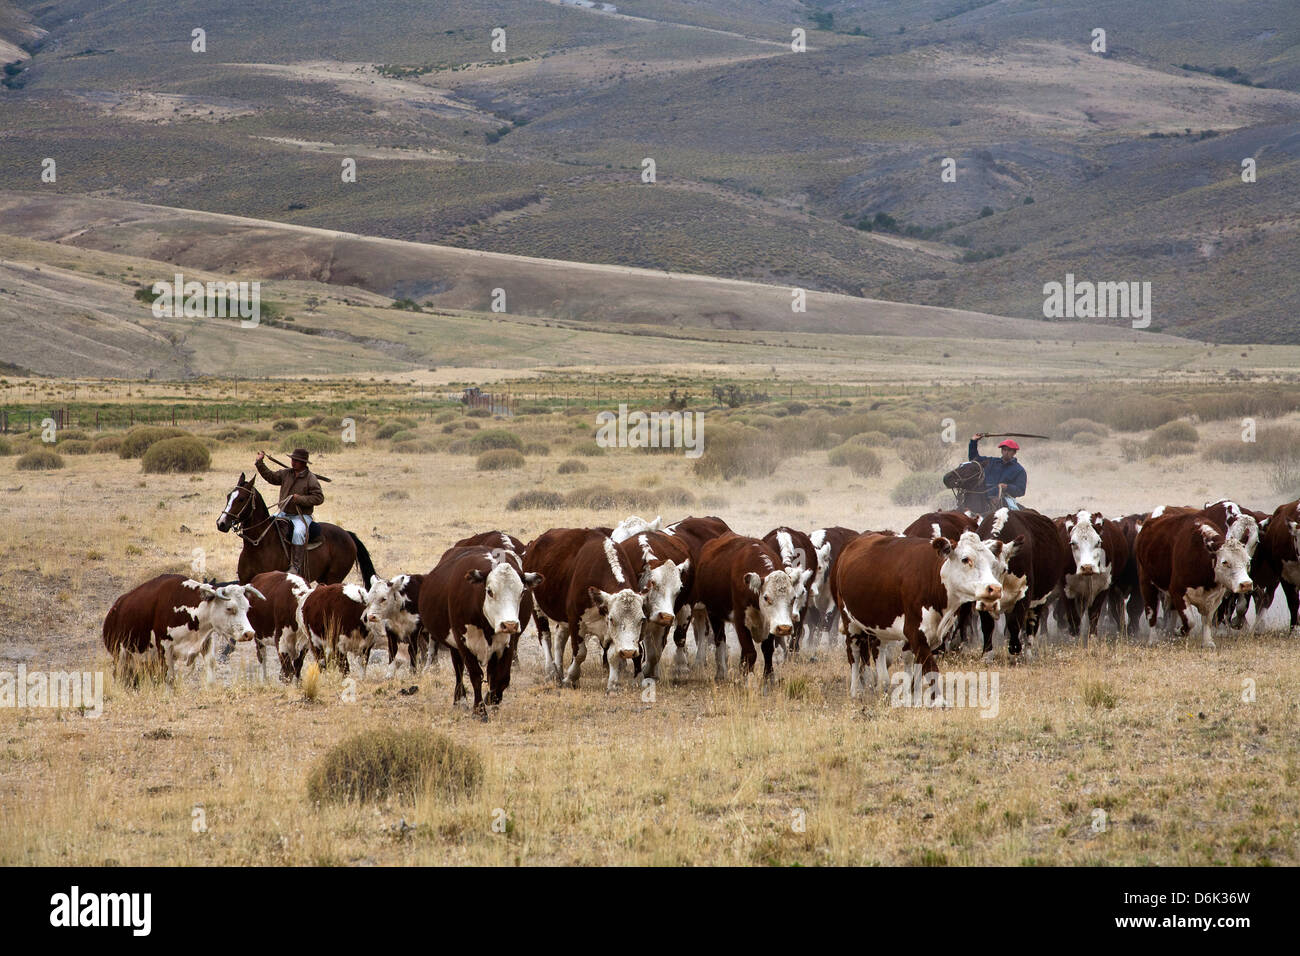 Gauchos with cattle at the Huechahue Estancia, Patagonia, Argentina, South America - Stock Image